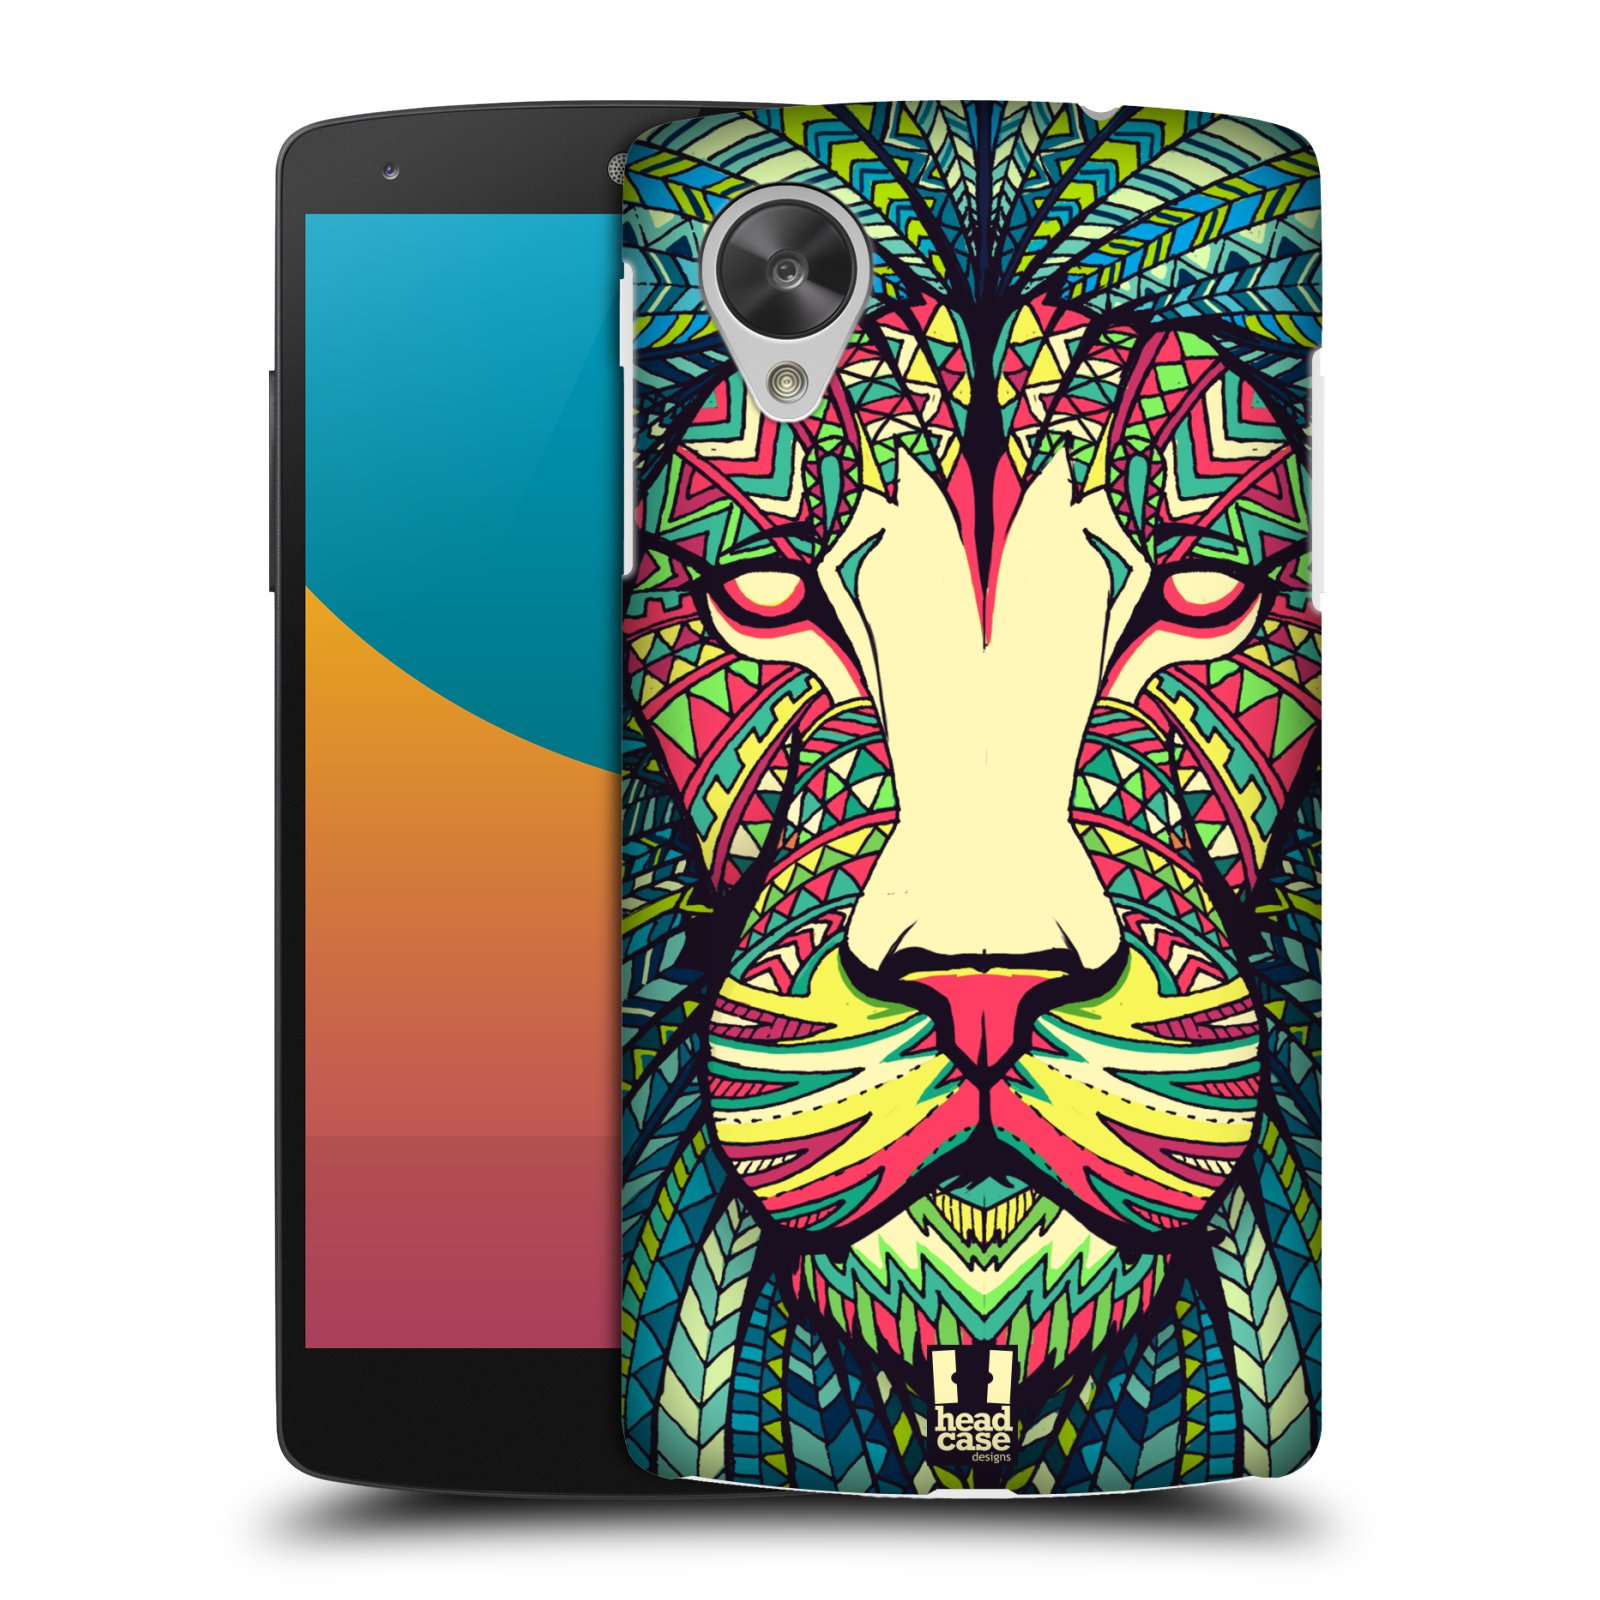 HEAD CASE AZTEC ANIMAL FACES SNAP-ON BACK CASE COVER FOR LG GOOGLE NEXUS 5 D821